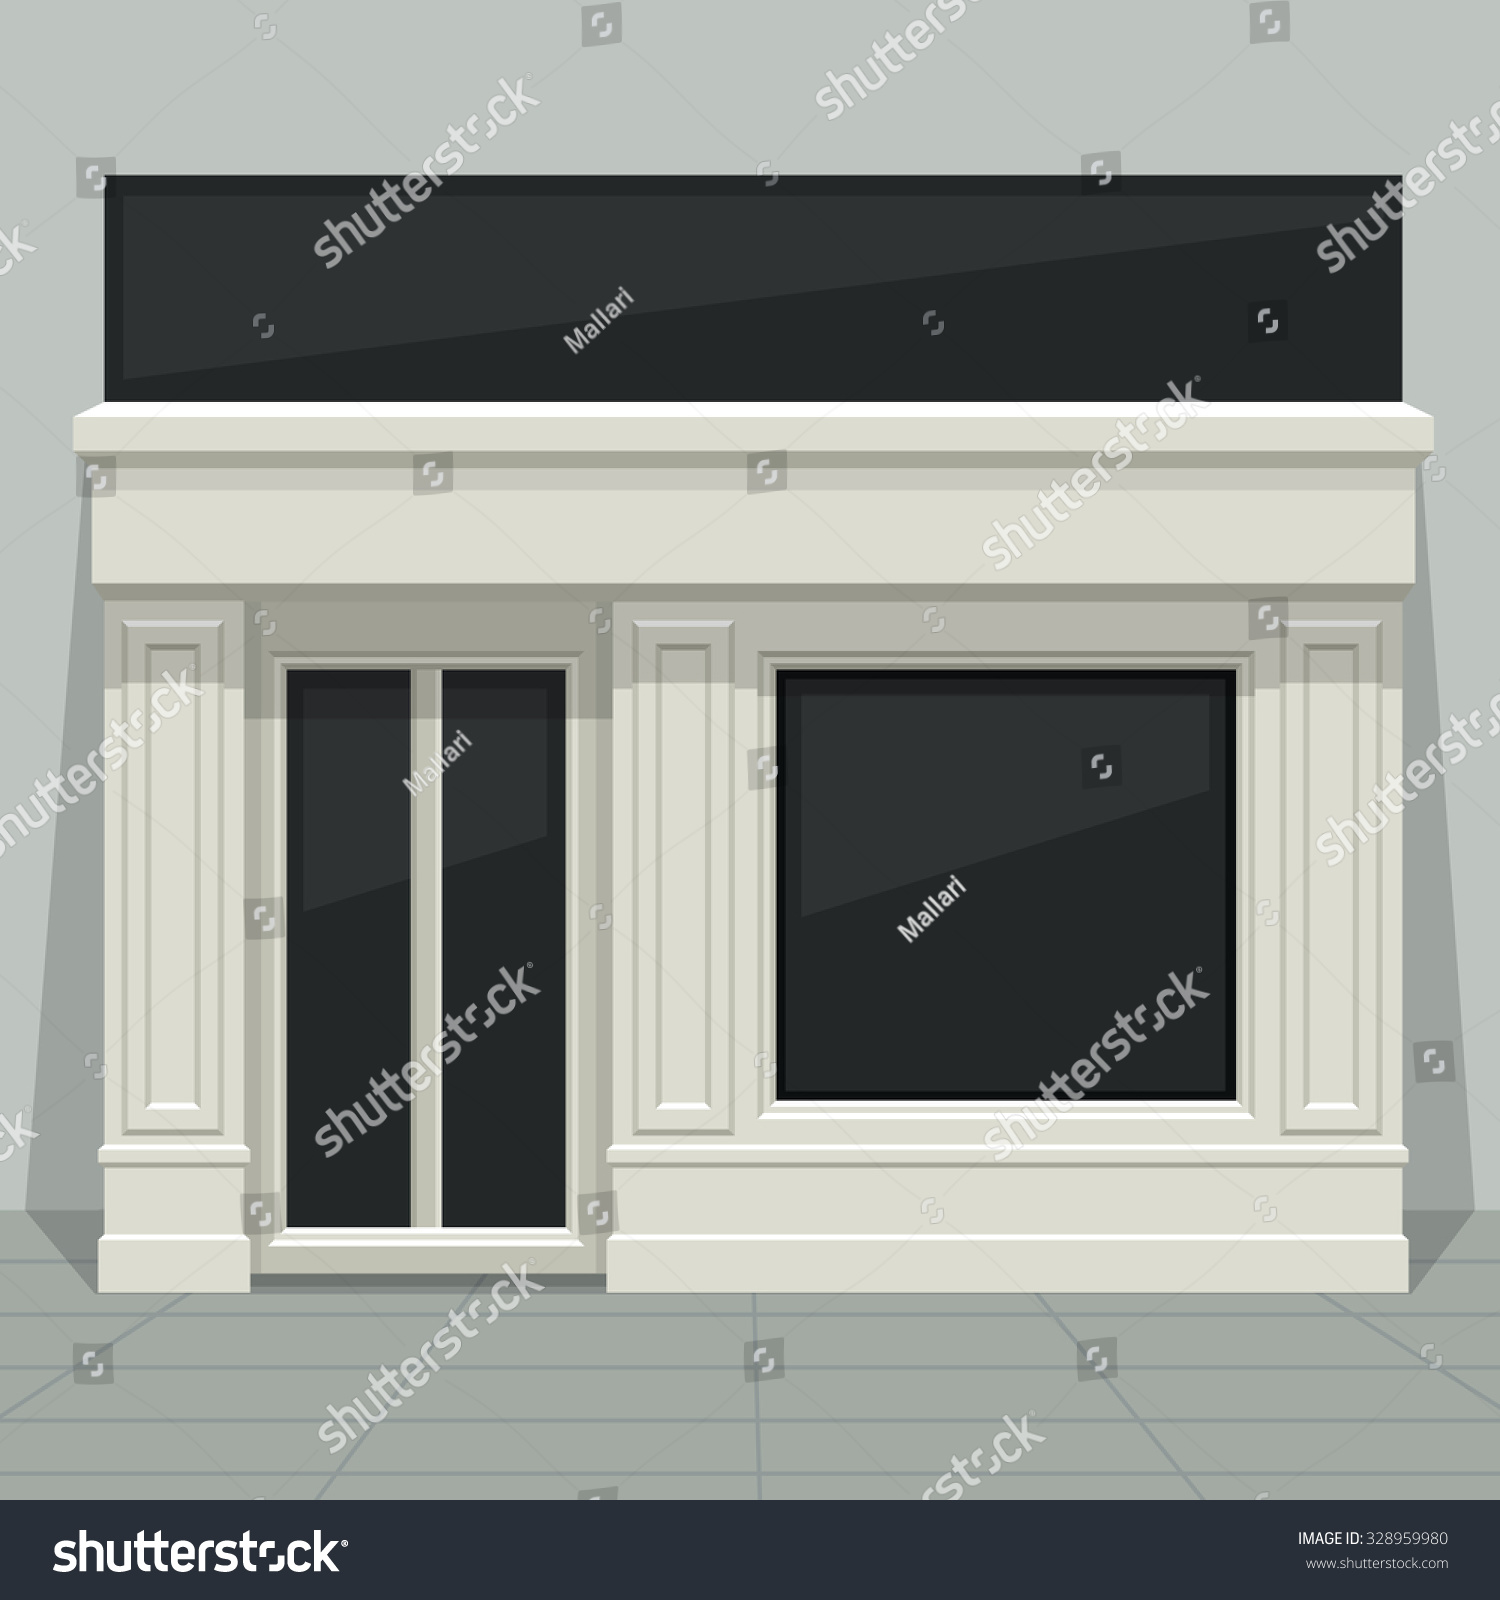 Home glass windows - Facade Shop Store Boutique With Glass Windows And Doors Front View Front